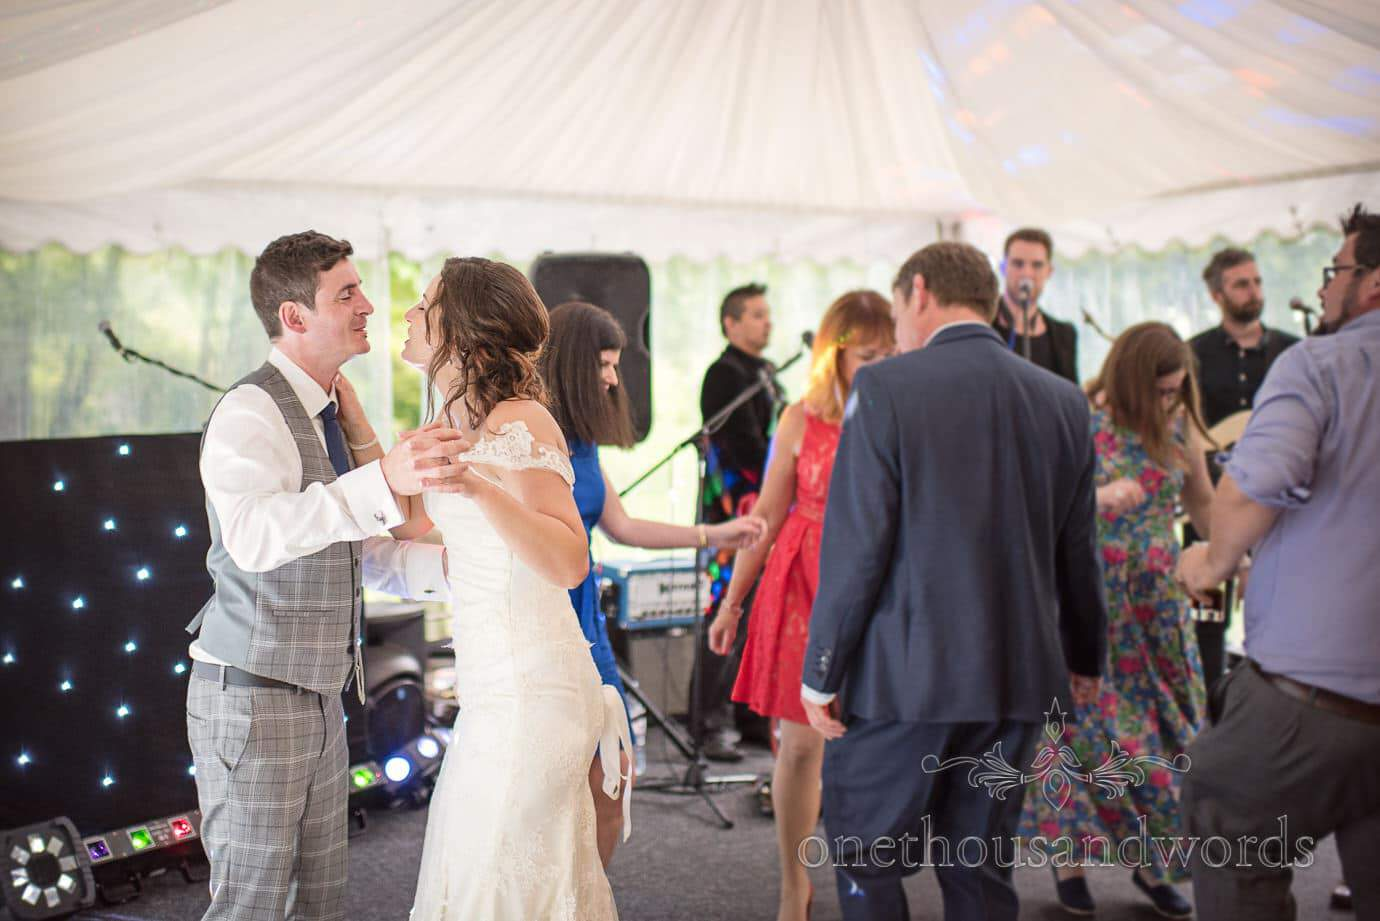 Bride and groom dance with wedding guests at The Old Vicarage marquee Wedding